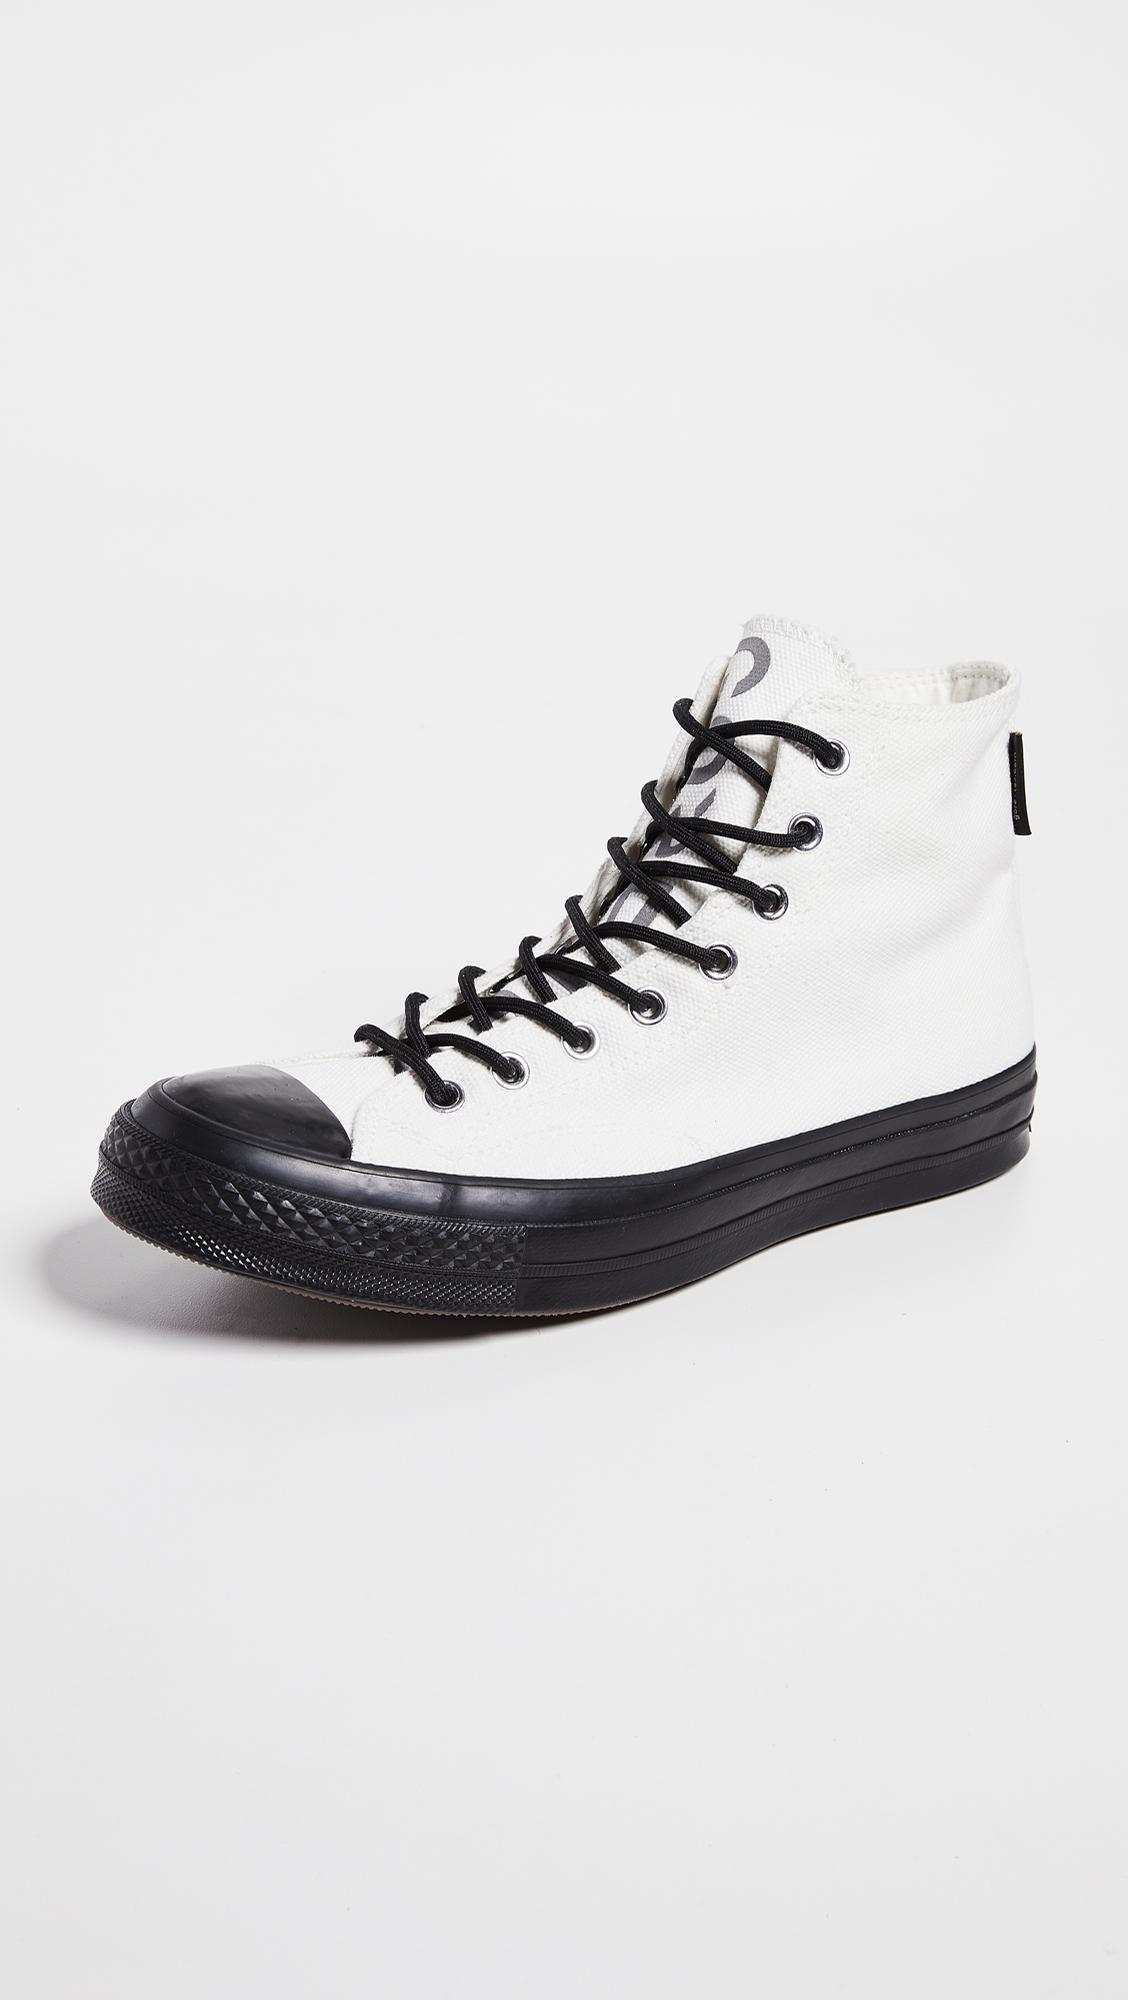 d7785cac1b2 Lyst - Converse Chuck 70 Gore-tex Waterproof Hi Top Sneakers in ...